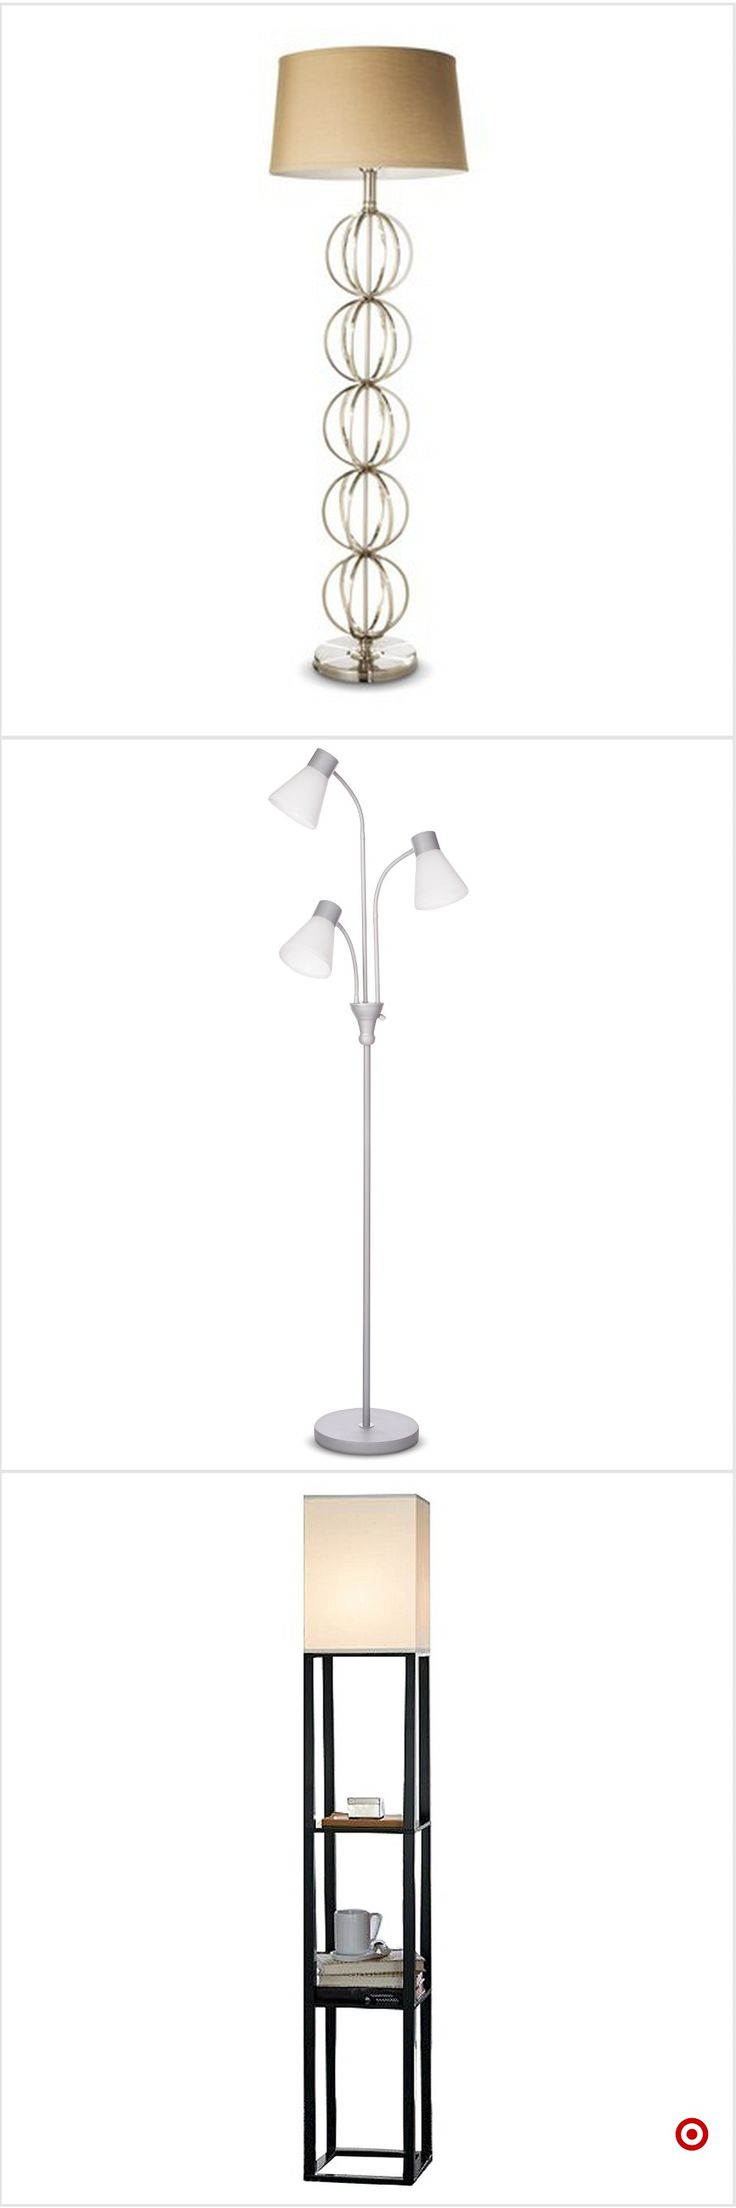 Threshold torchiere floor lamp textured bronze 65 - Shop Target For Floor Lamp You Will Love At Great Low Prices Free Shipping On